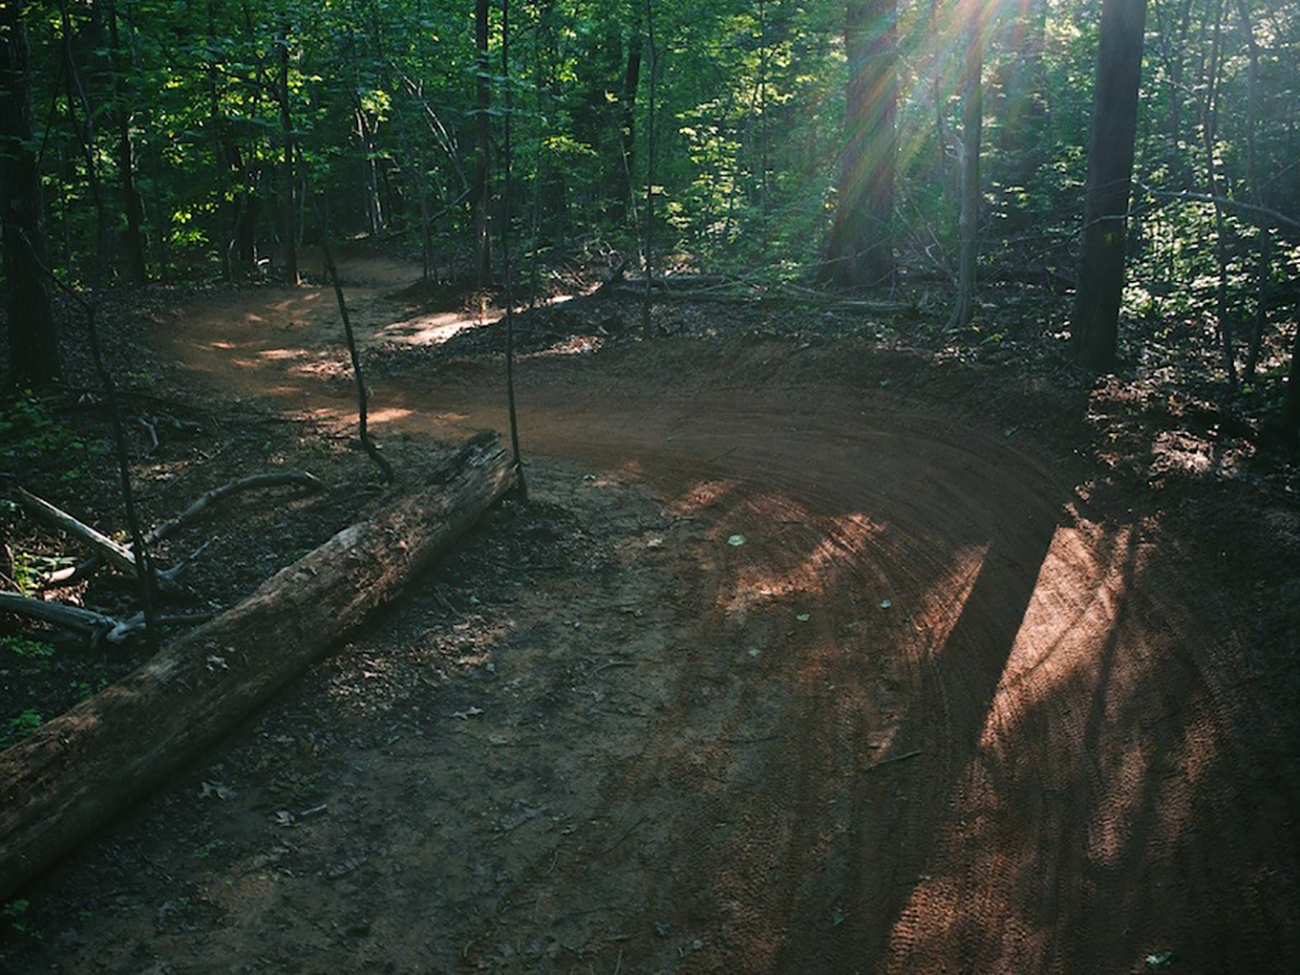 5 mountain biking spots in and around Charlotte that enthusiasts swear by